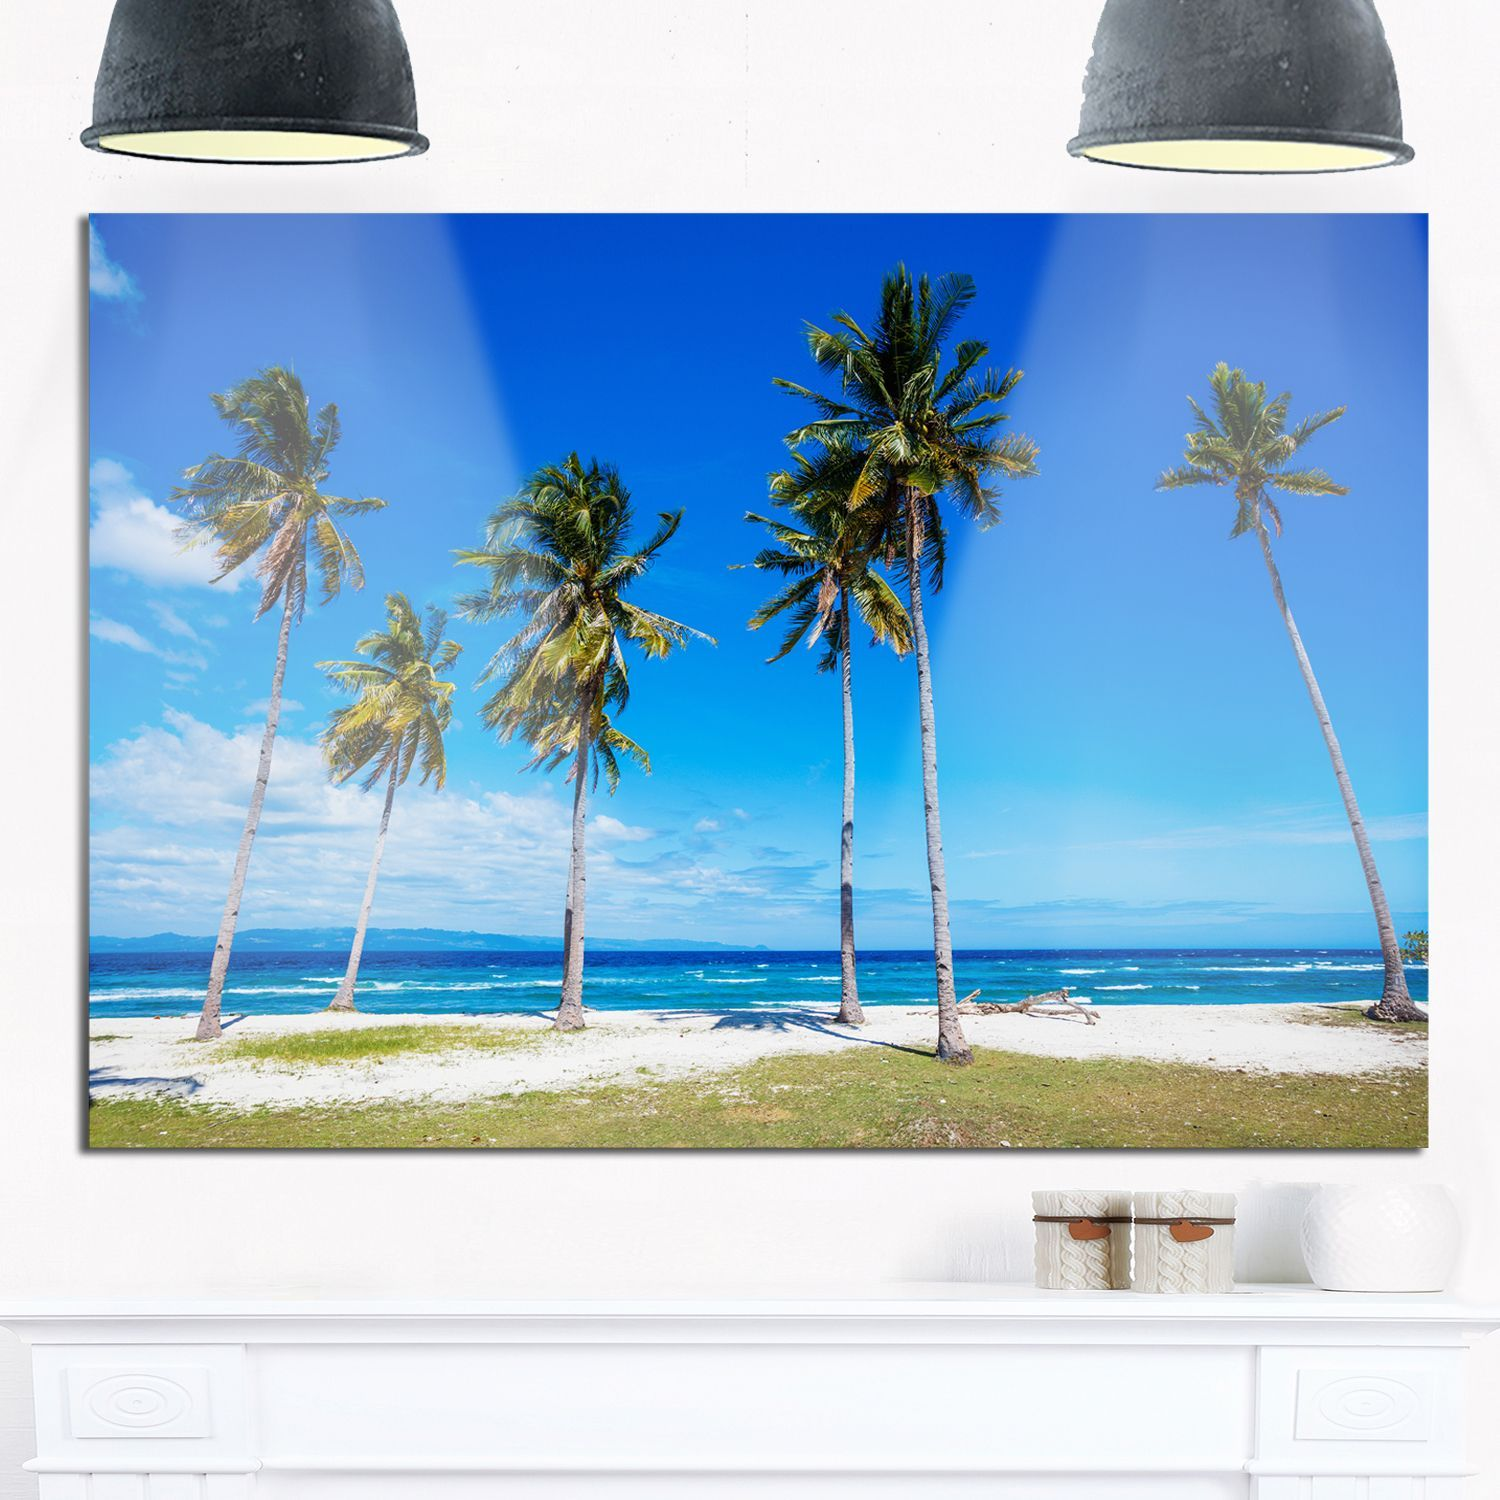 Palms on philippines tropical beach modern seascape glossy metal